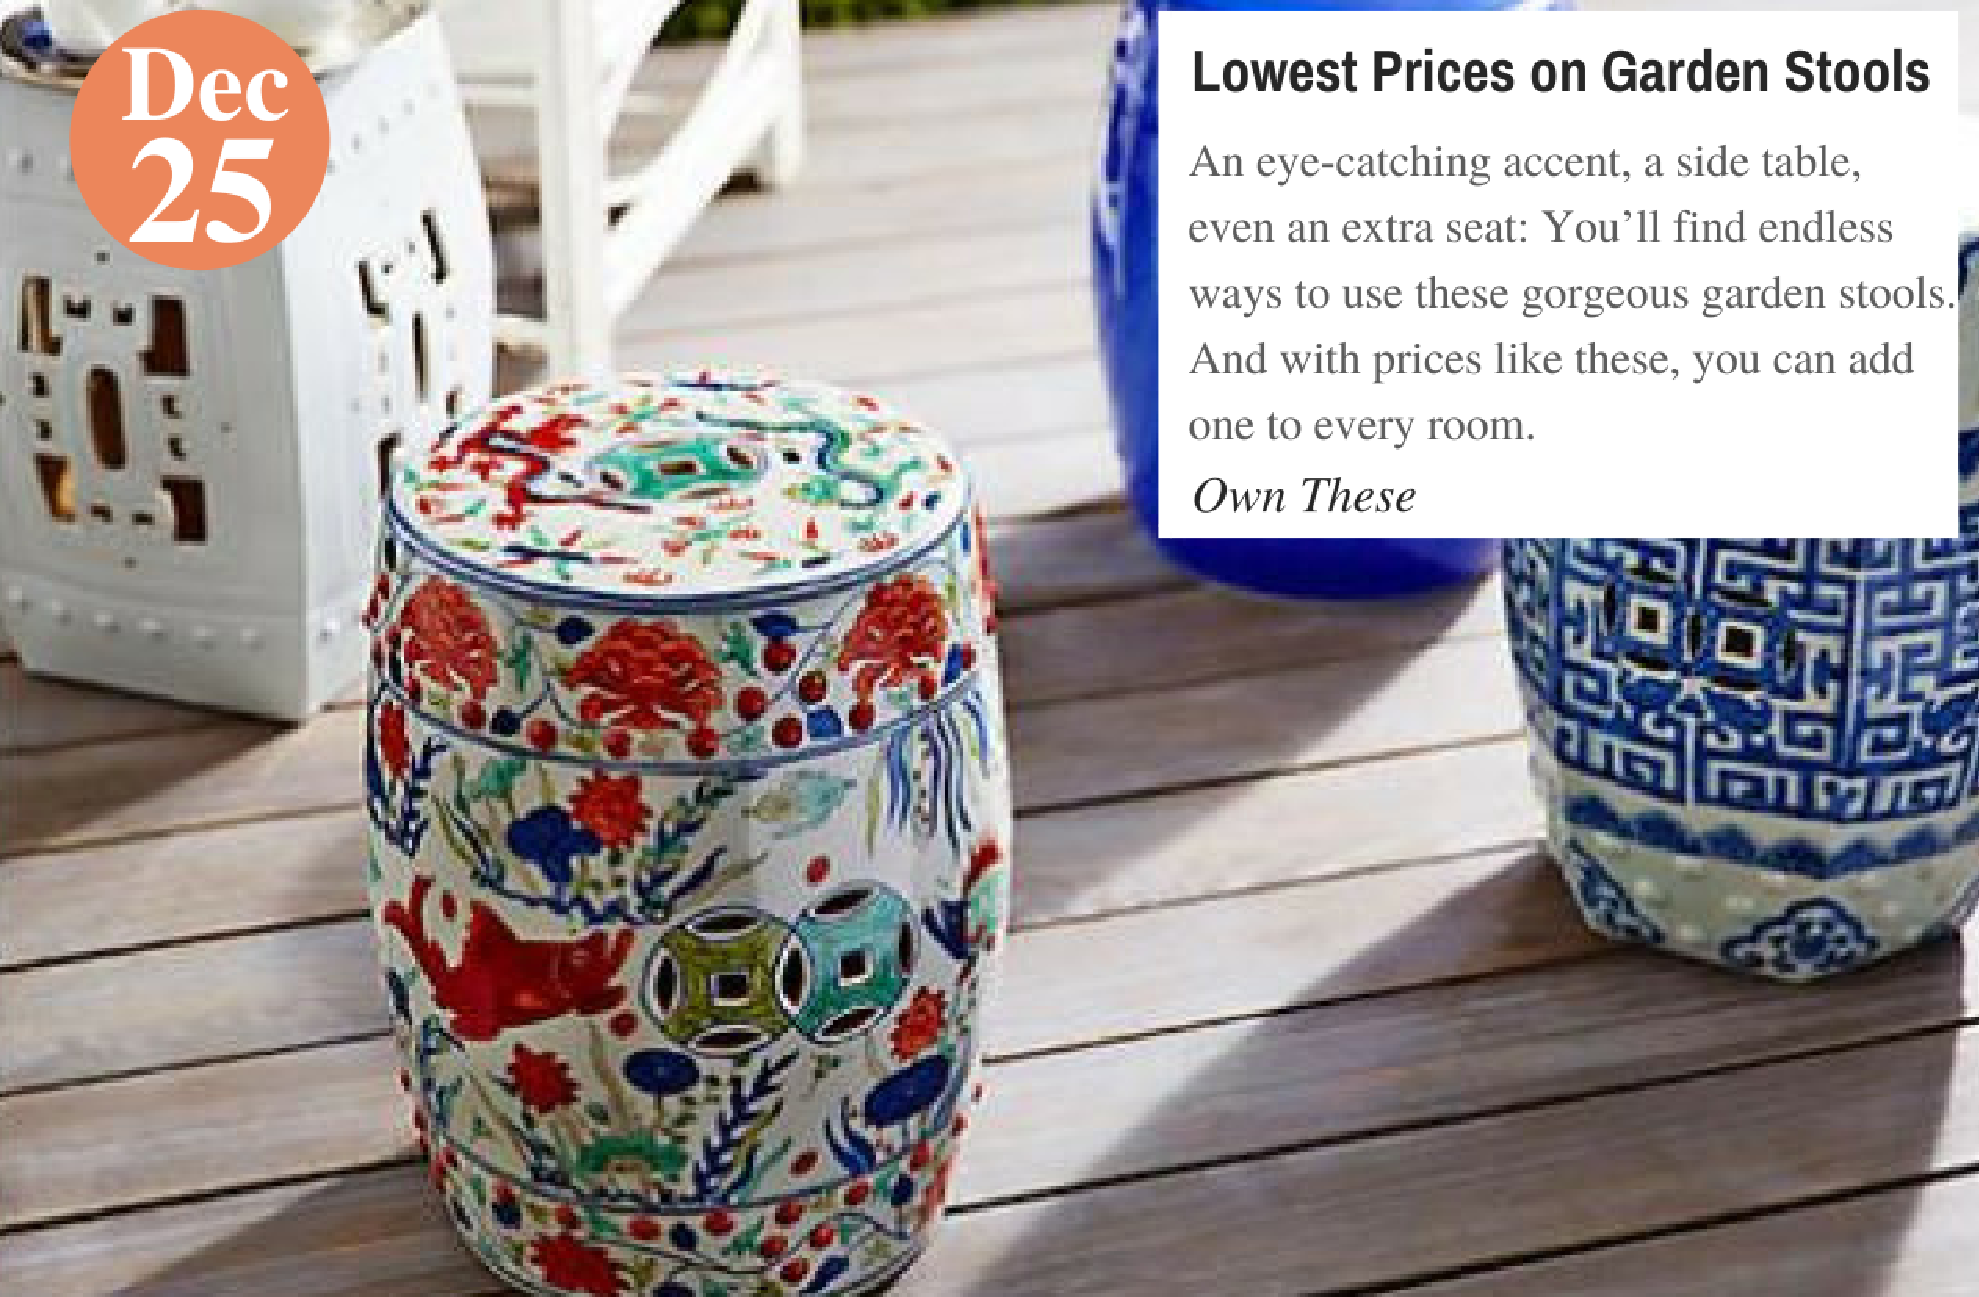 Lowest Prices on Garden Stools